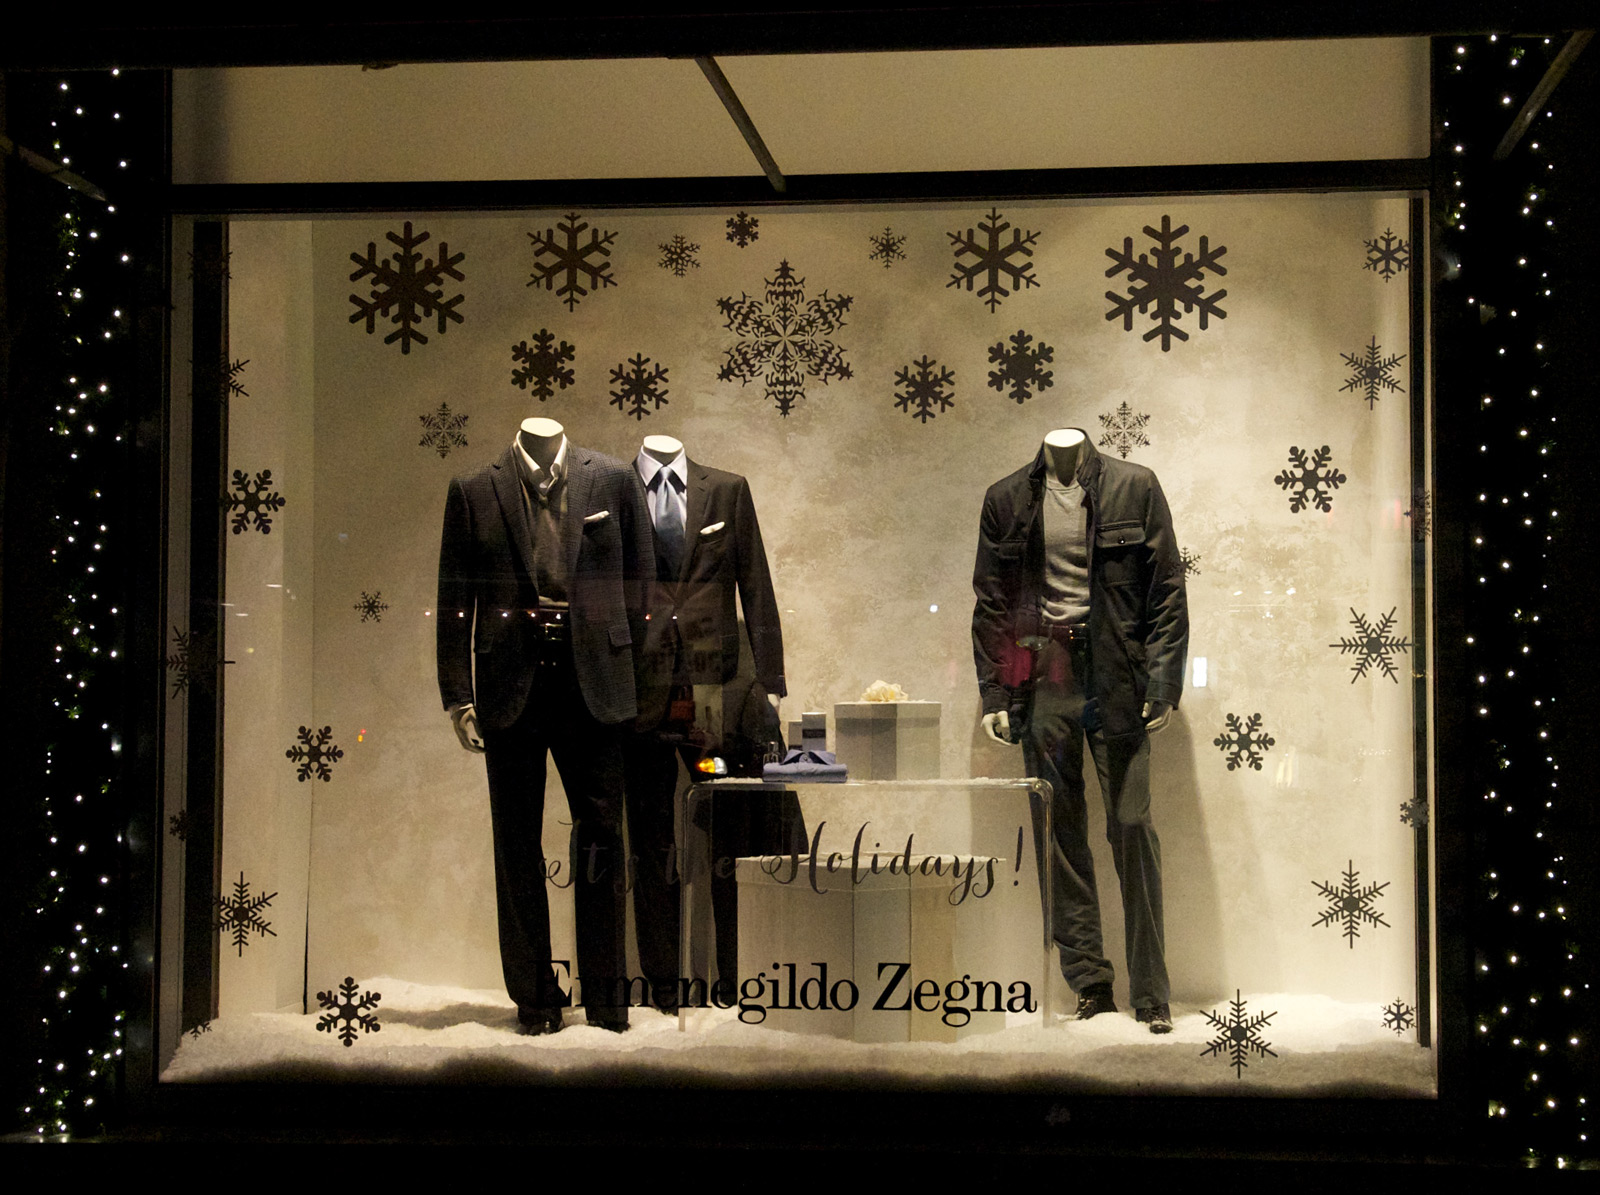 A stylish New Year's Eve window display, because of the classic men costumes, snow on the floor and the black frame with lights.